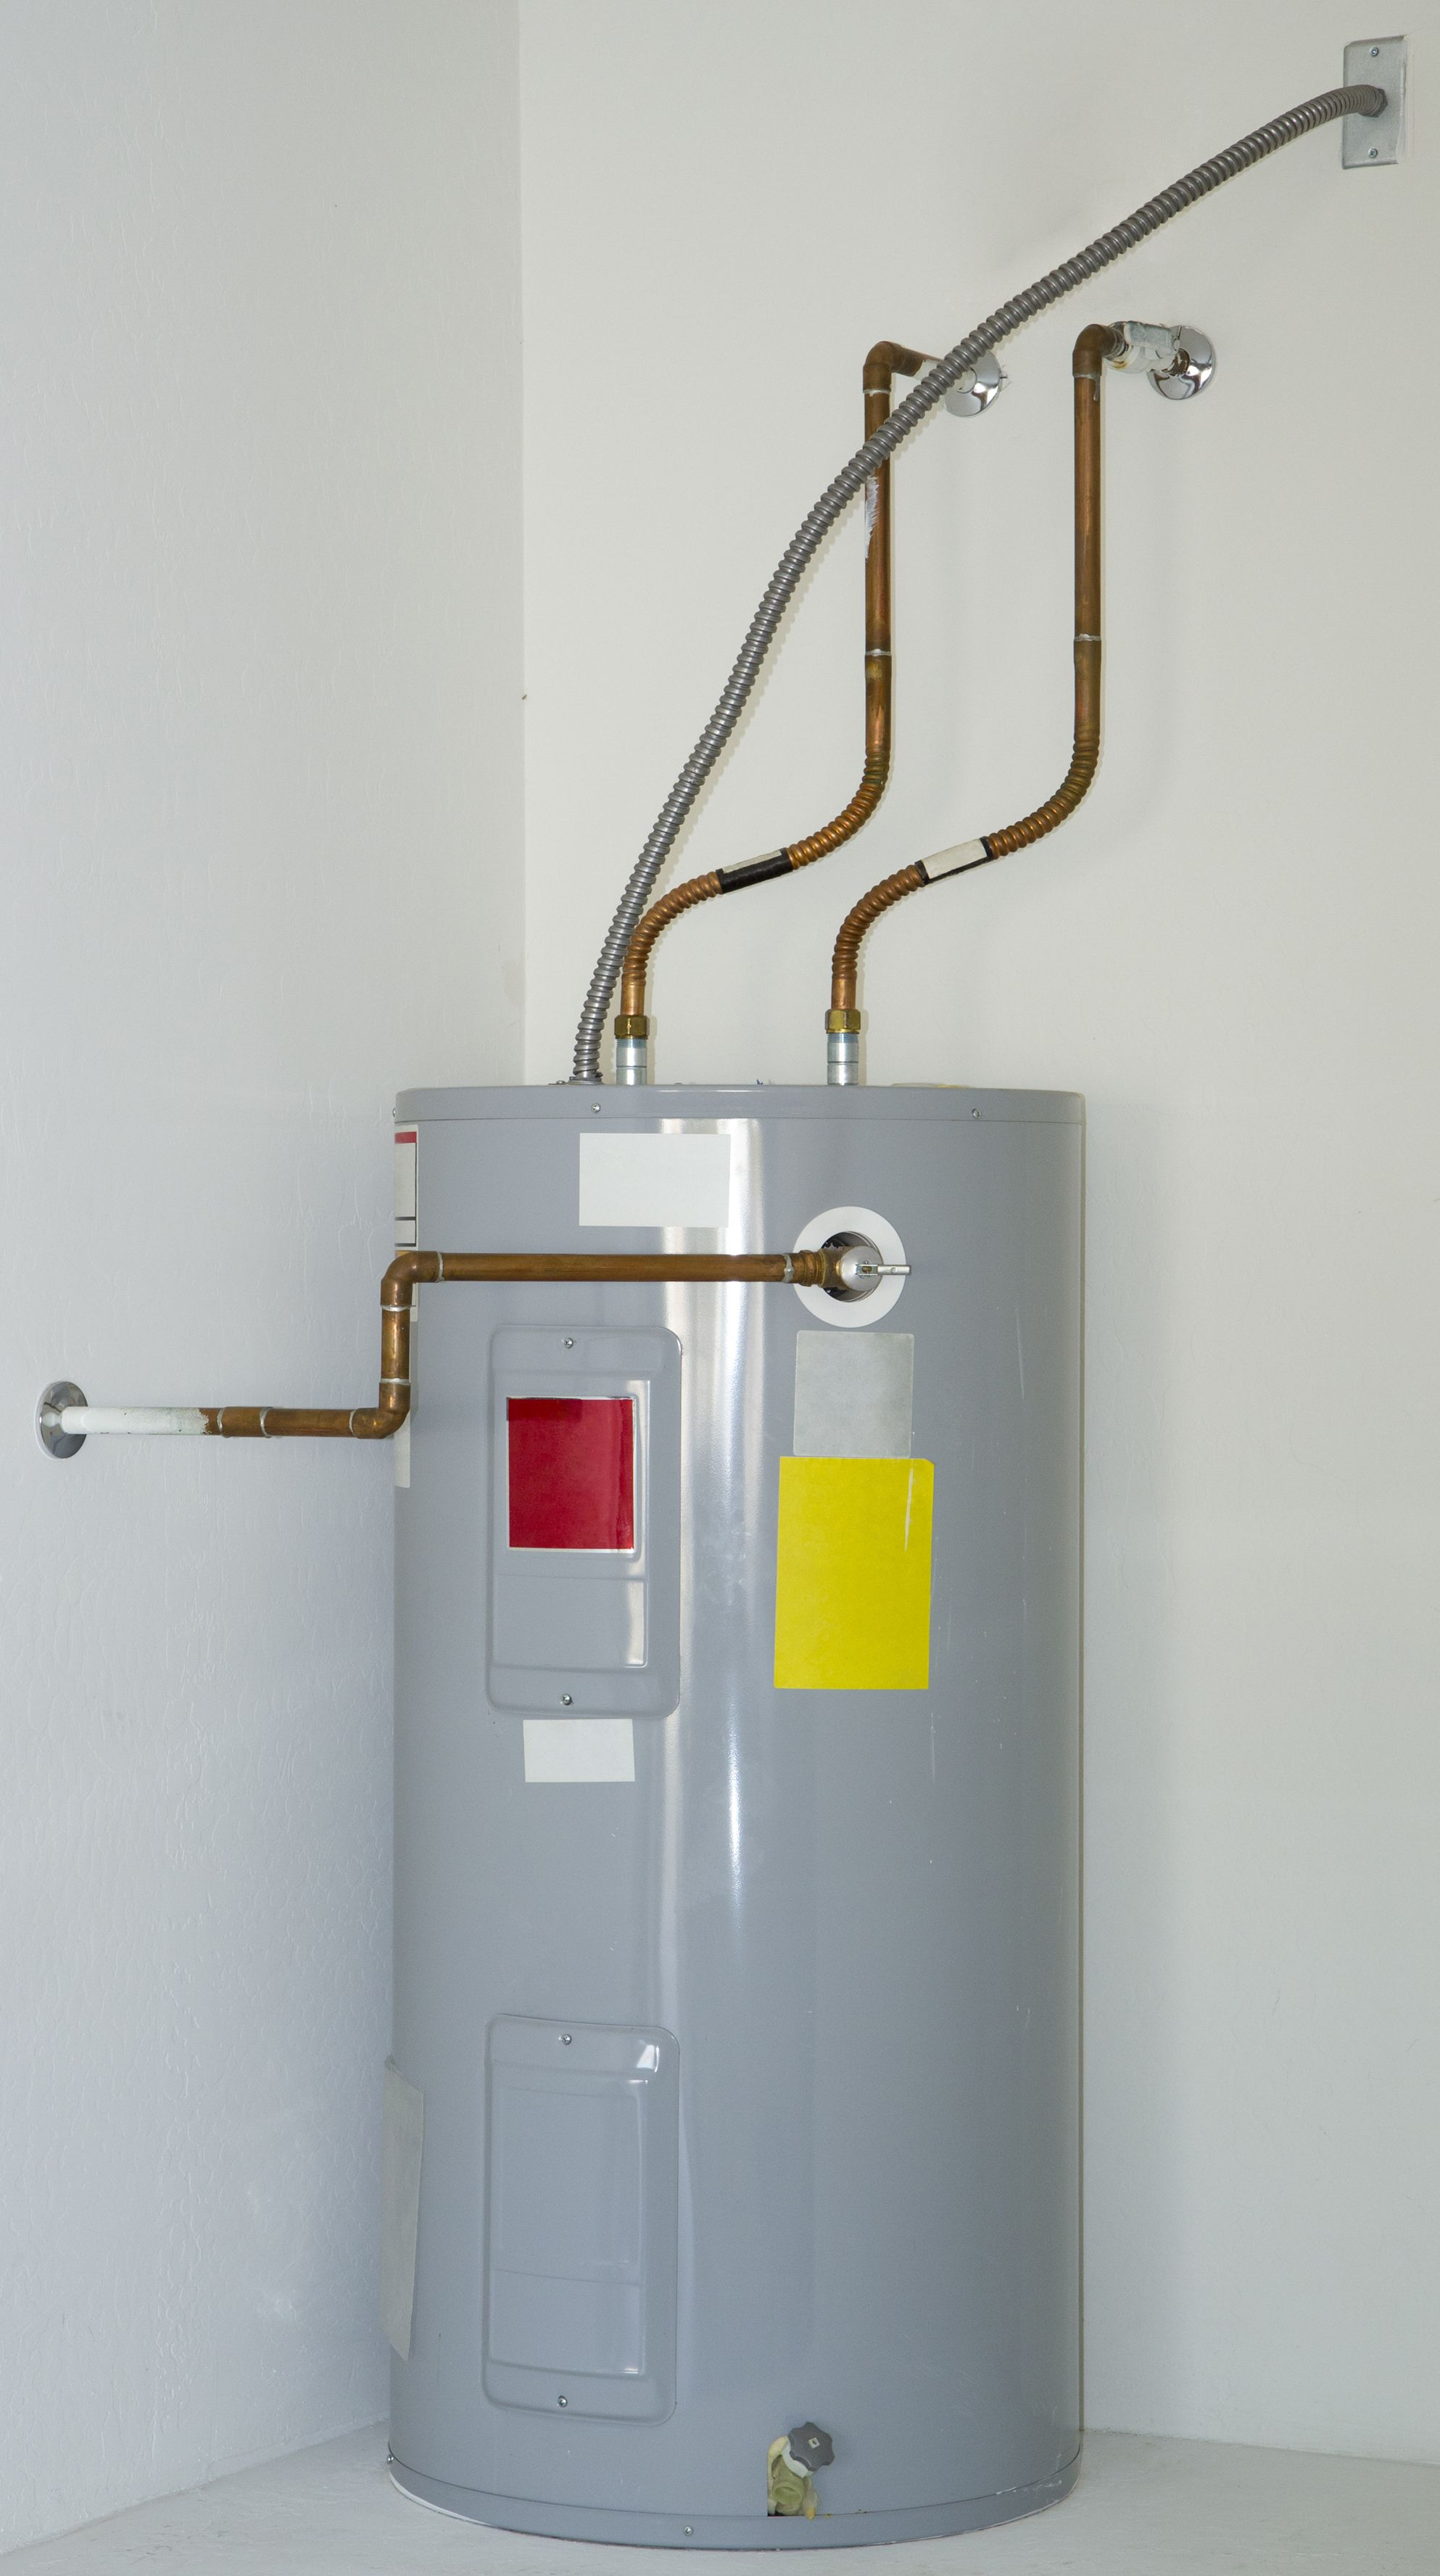 medium resolution of can you replace a gas hot water heater with an electric one answer in order to install an electric hot water heater you